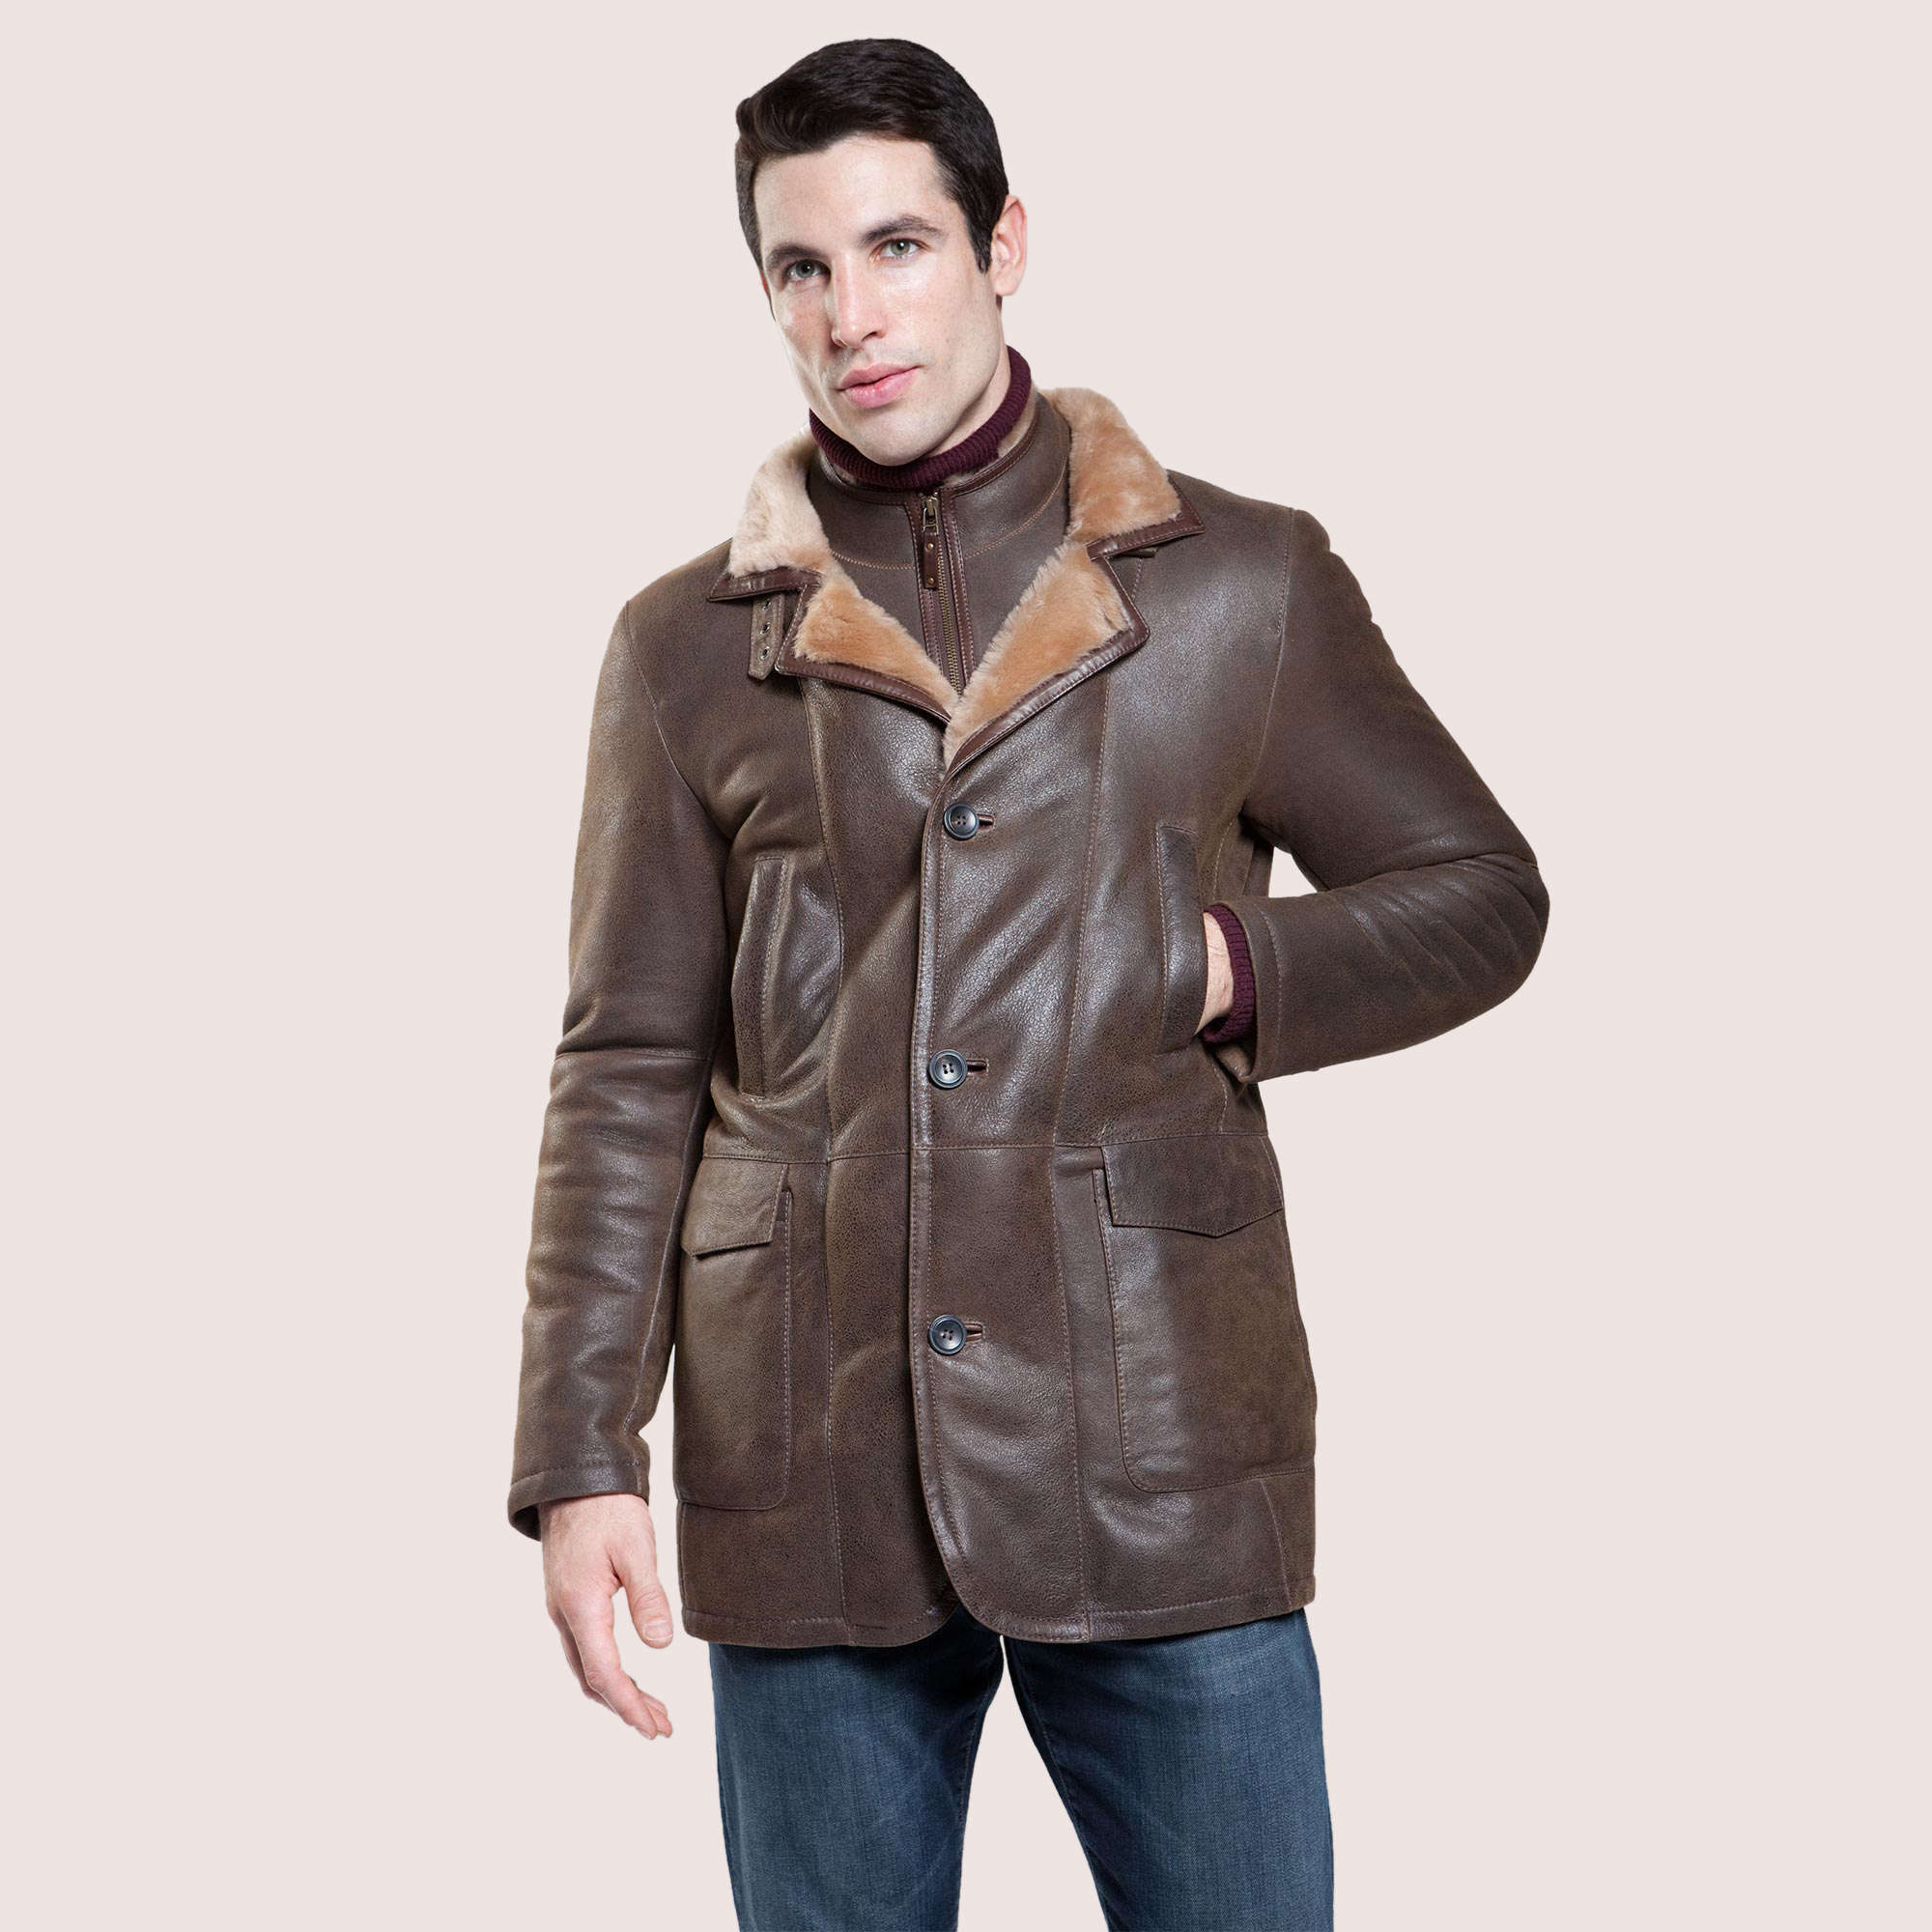 Utica Shearling Coat